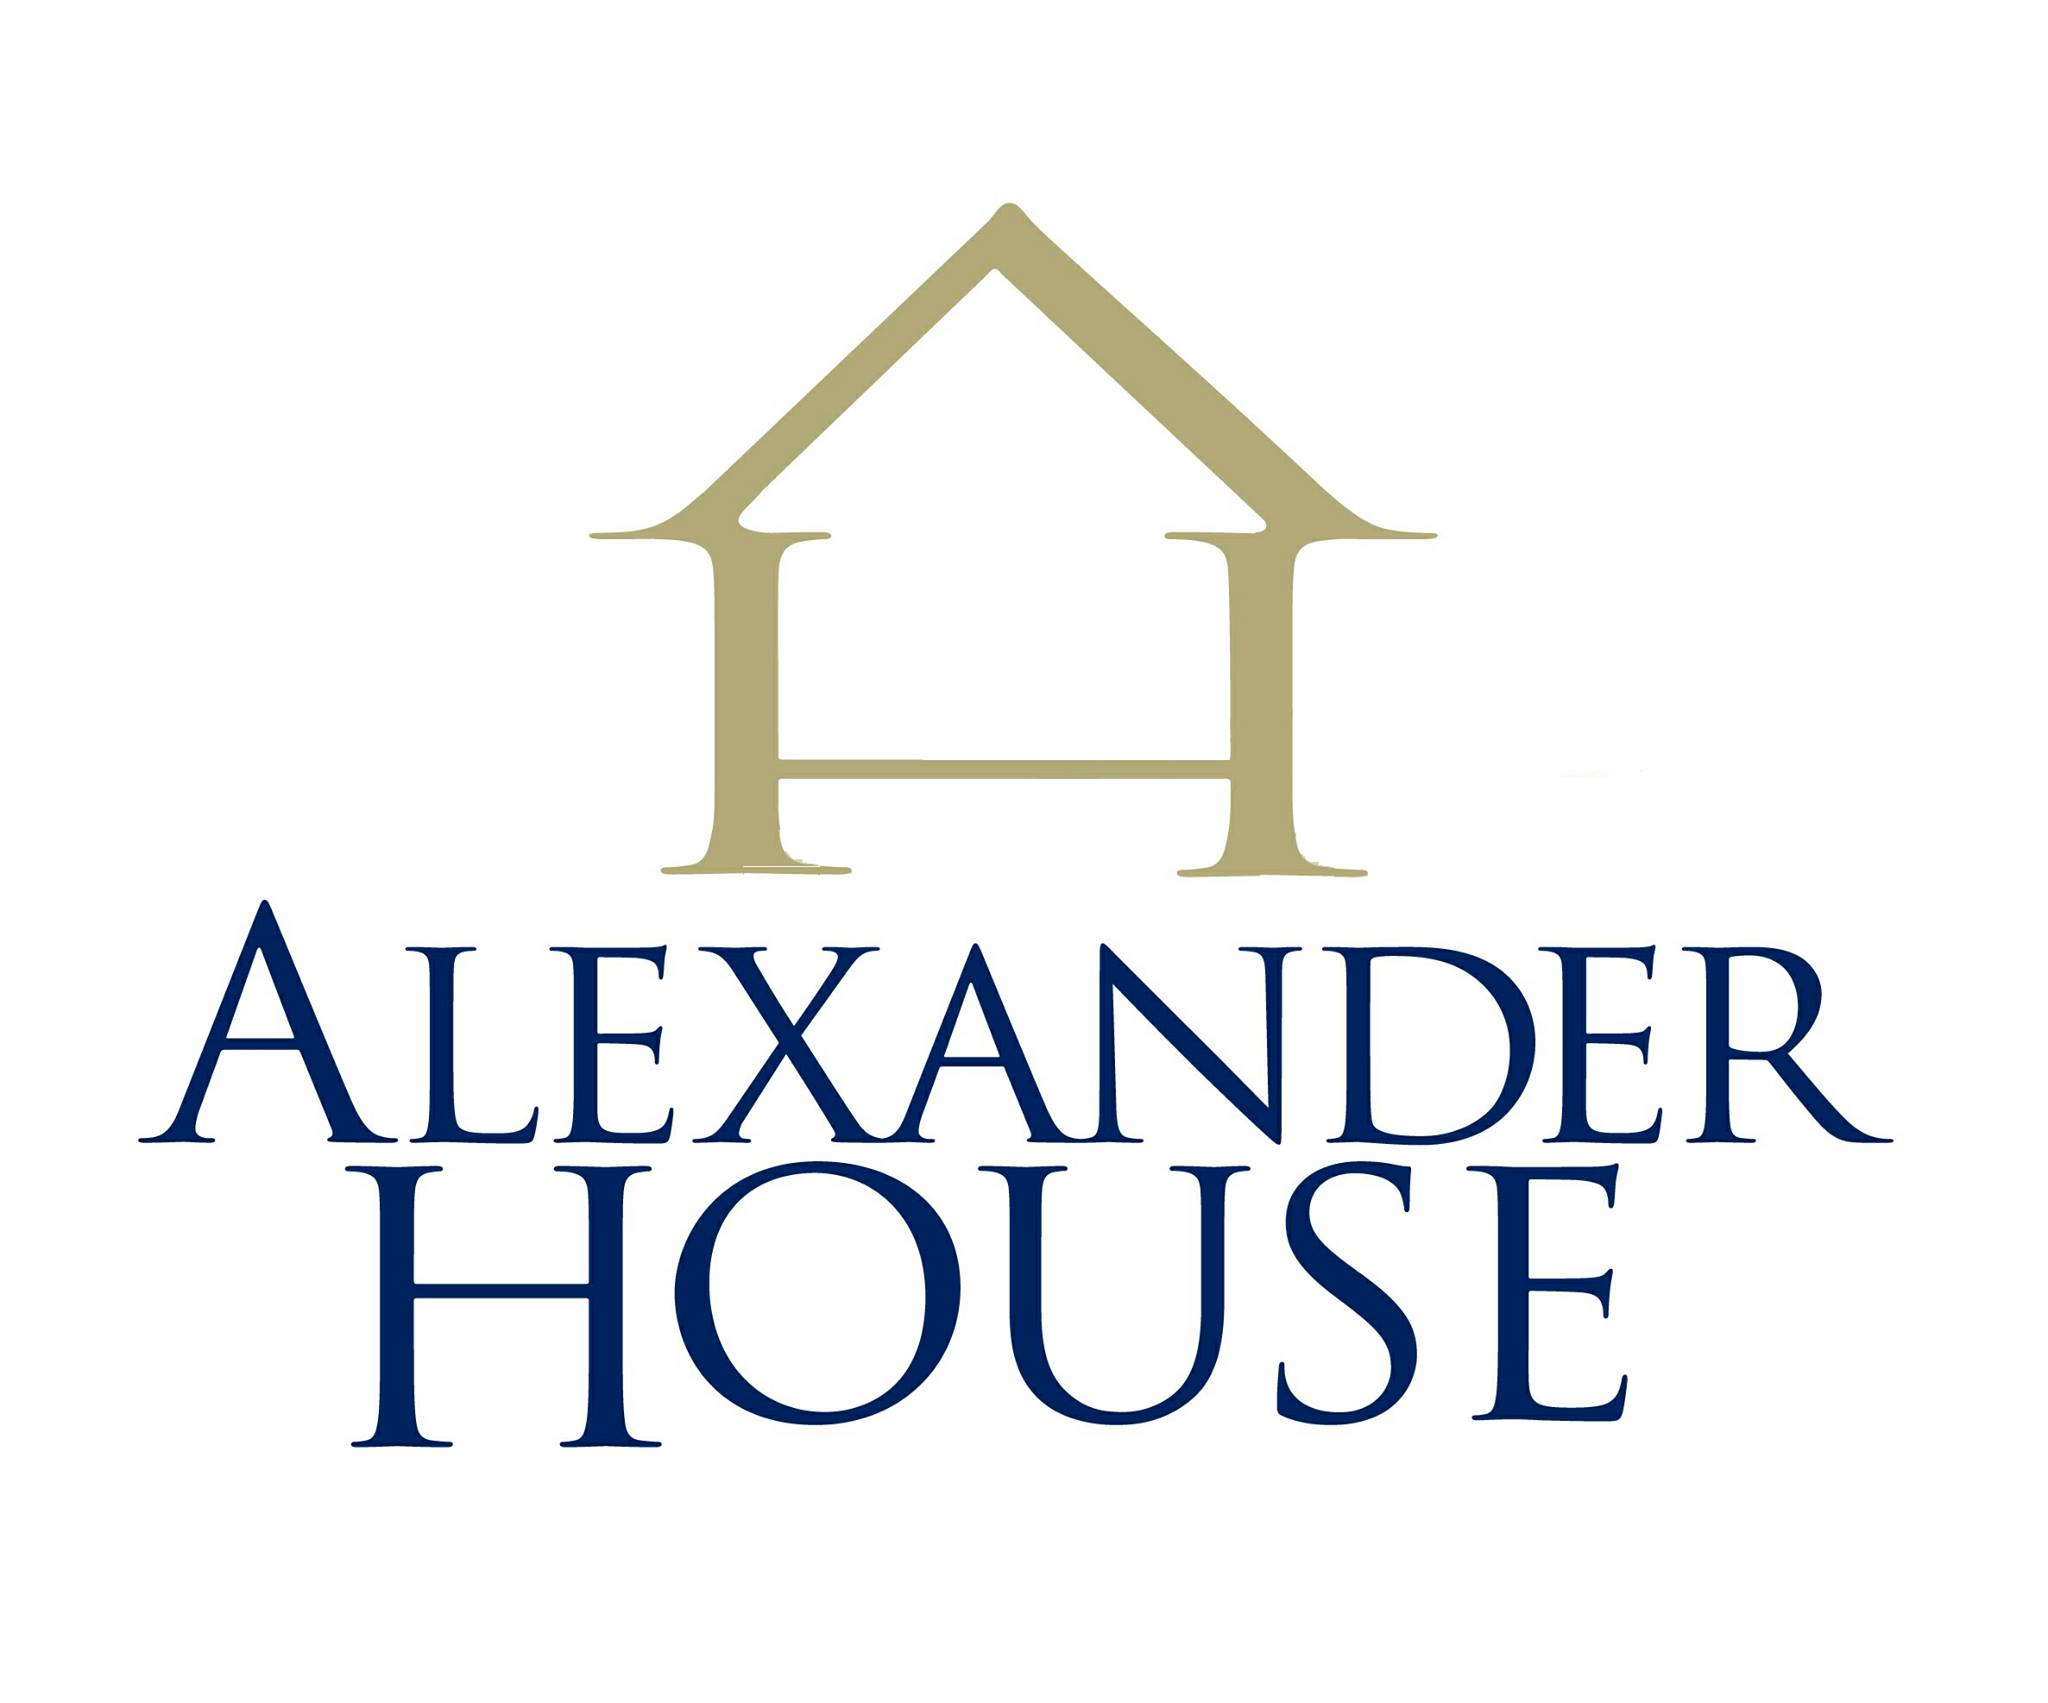 The alexander house marriage